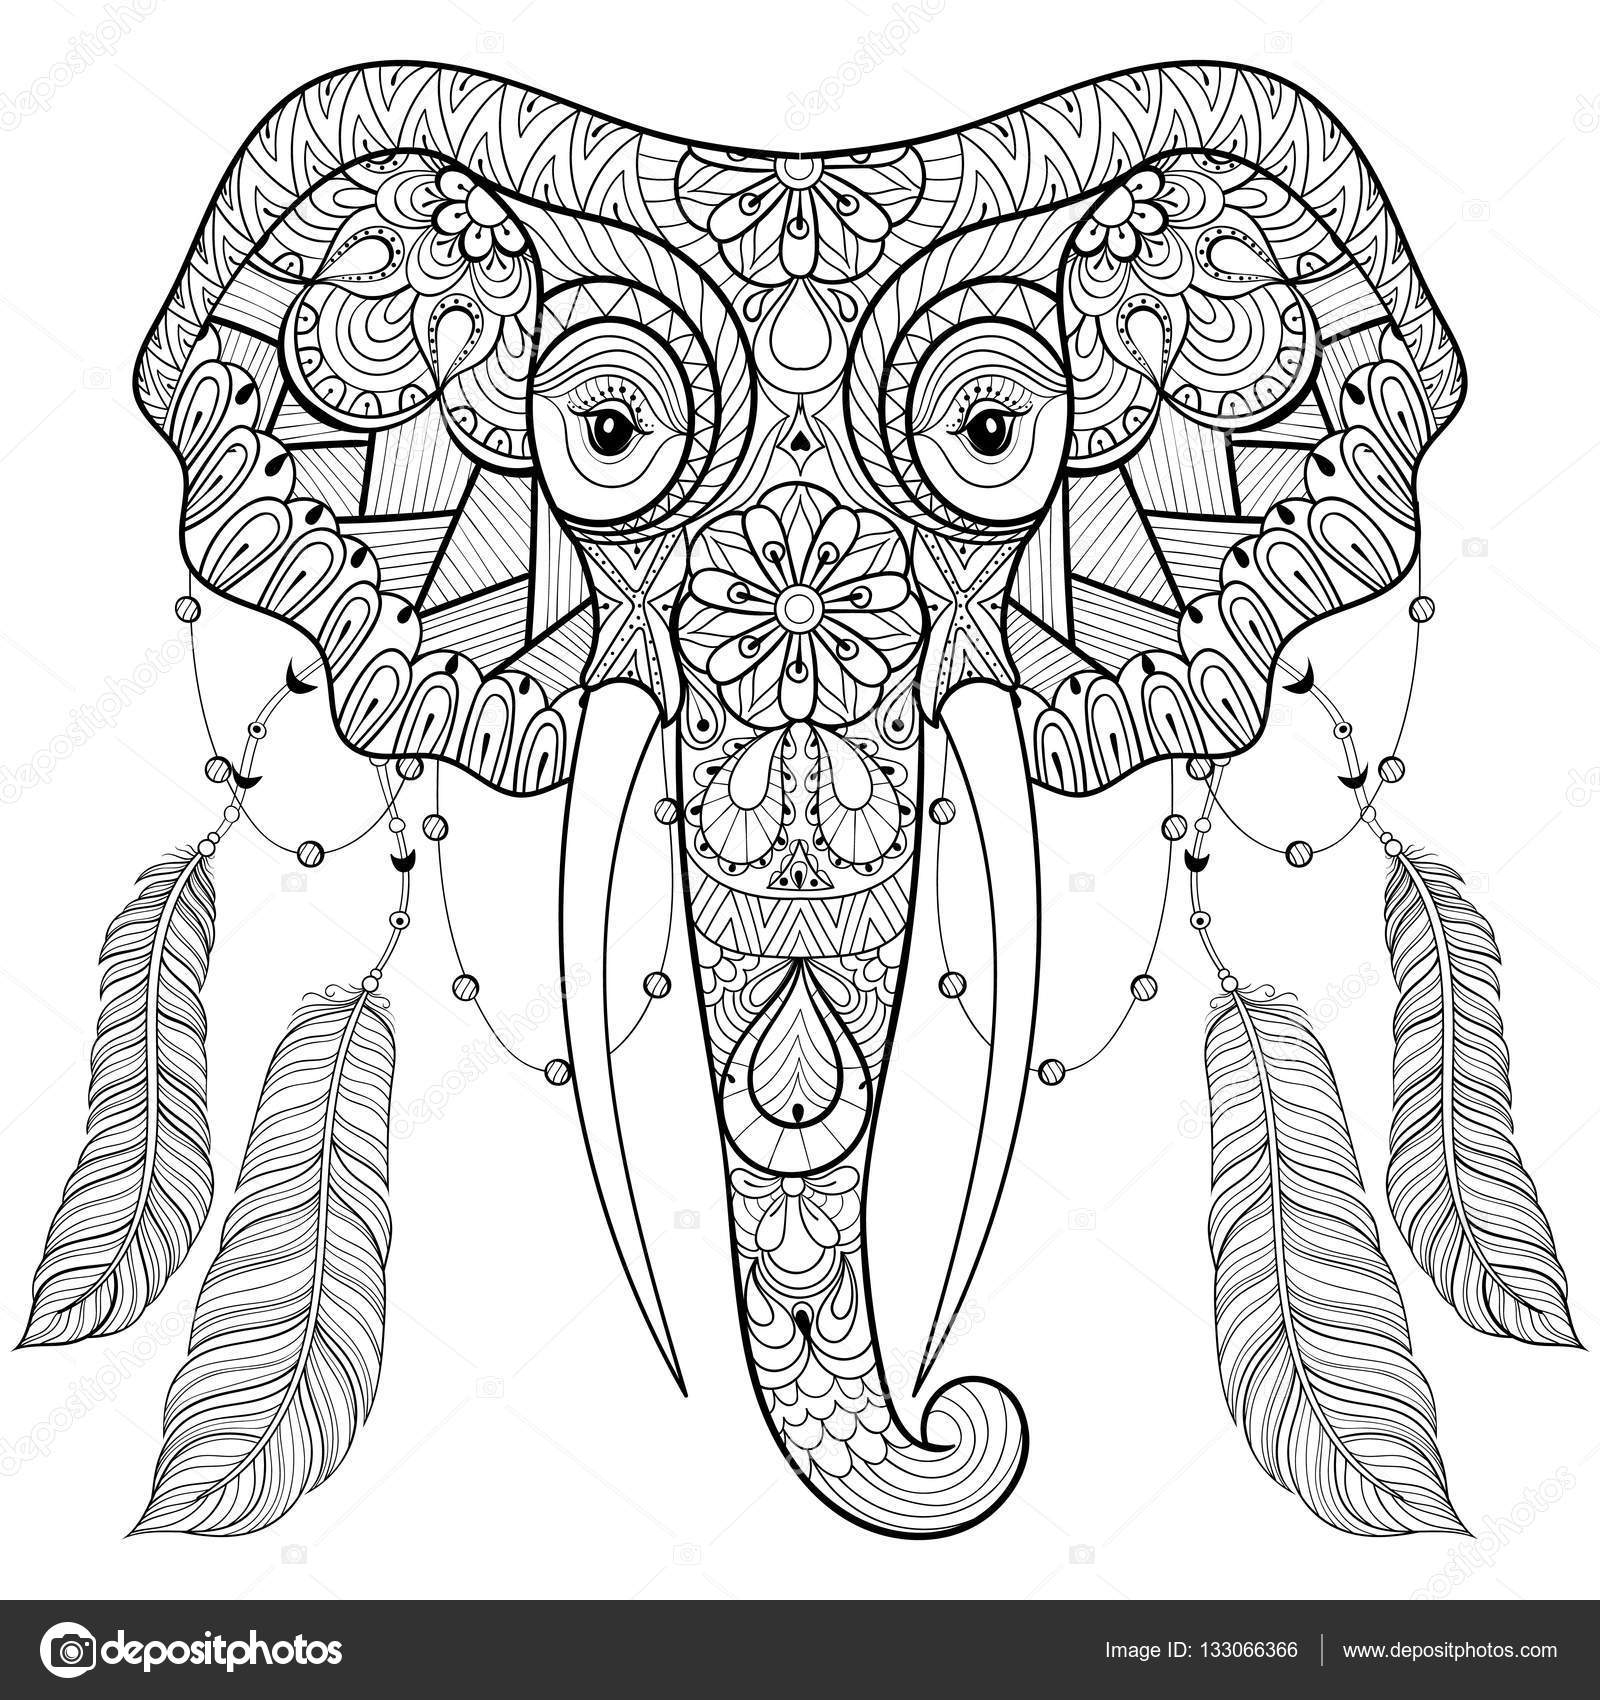 Free zentangle elephant coloring pages ~ Zentangle indian Elephant with bird feathers in boho chic ...